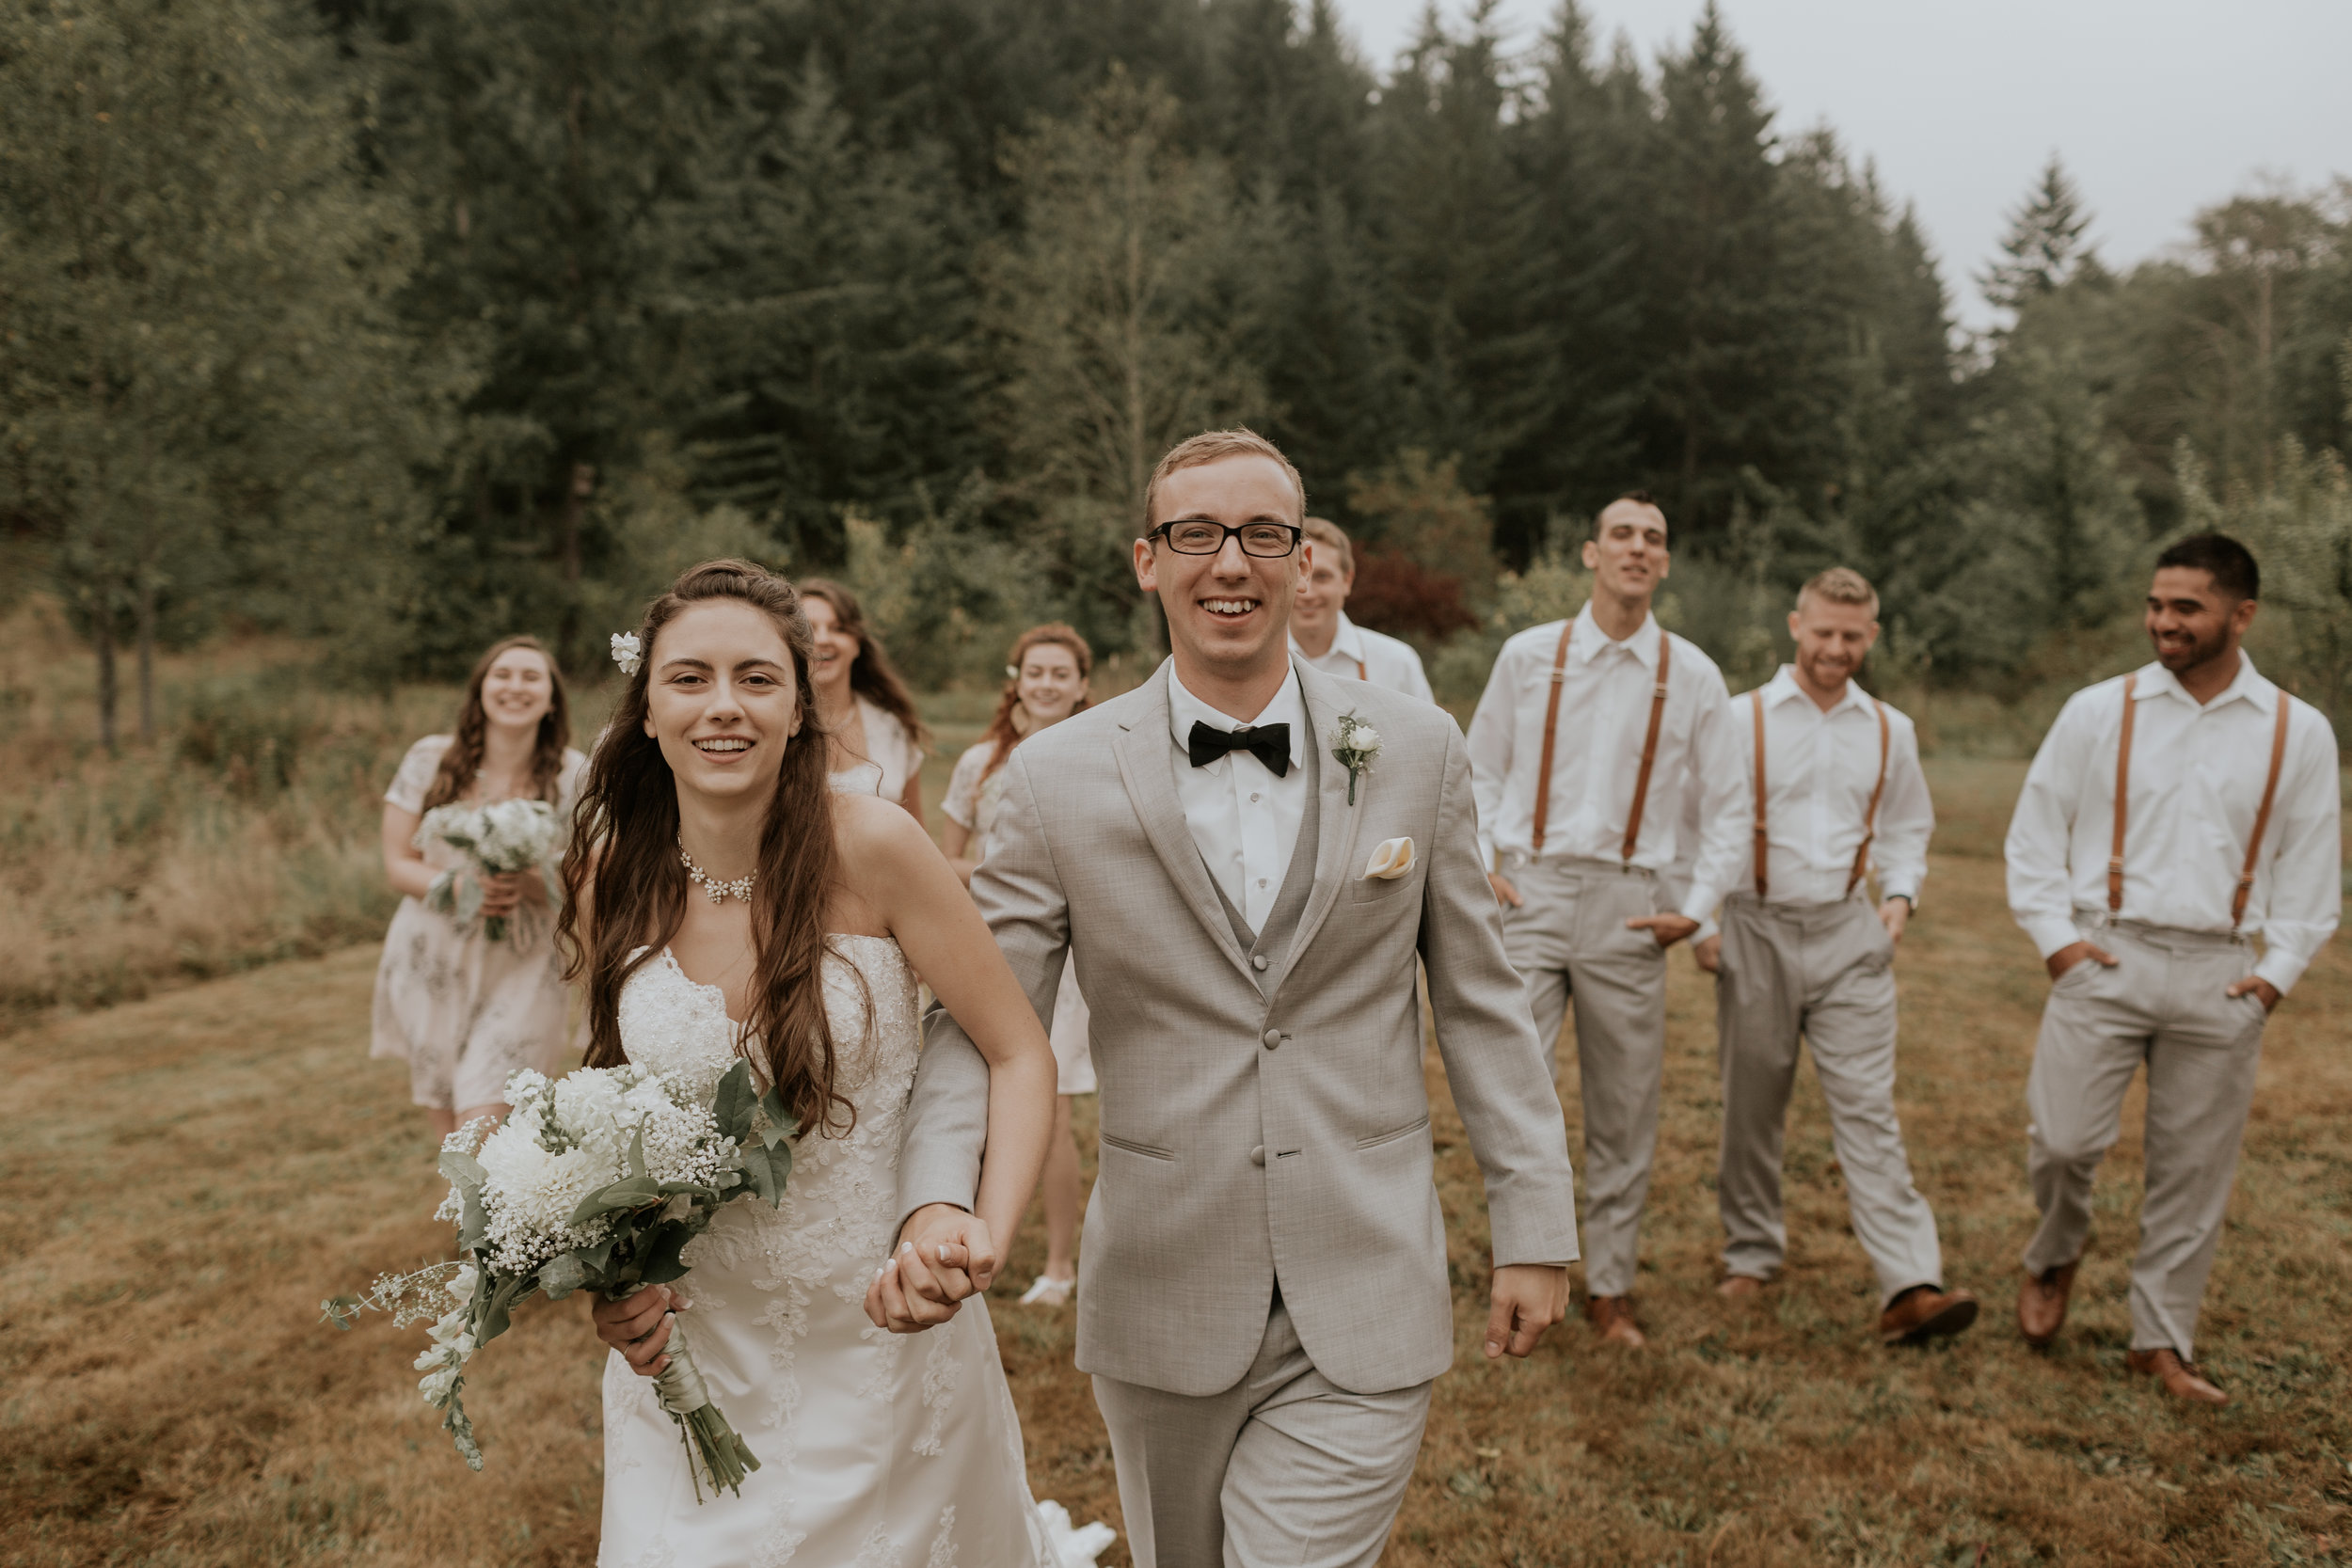 Port-Angeles-elopement-wedding-pnw-olympic-peninsula-photographer-portrait-kayladawnphoto-kayla-dawn-photography-olympic-national-park-118.jpg